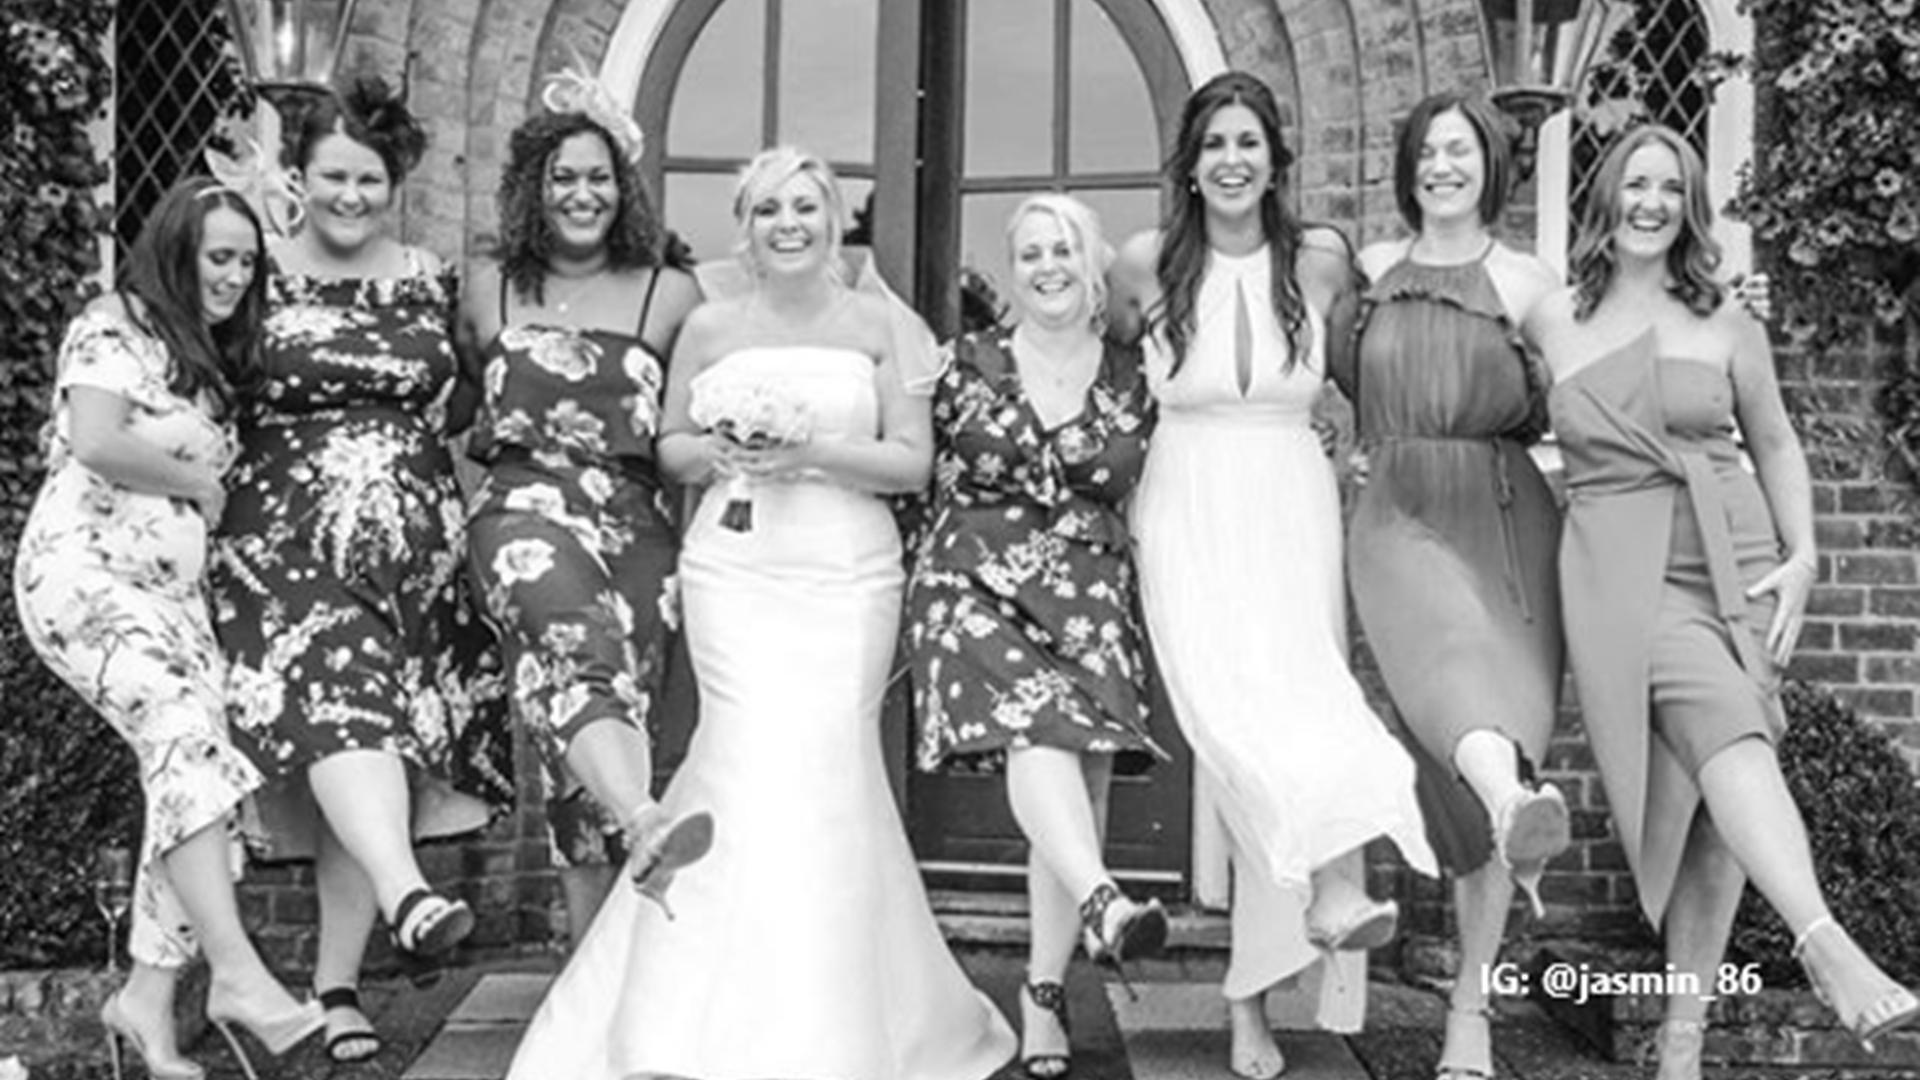 Black and white photo of a bride posing with her bridesmaid and female members of the wedding party